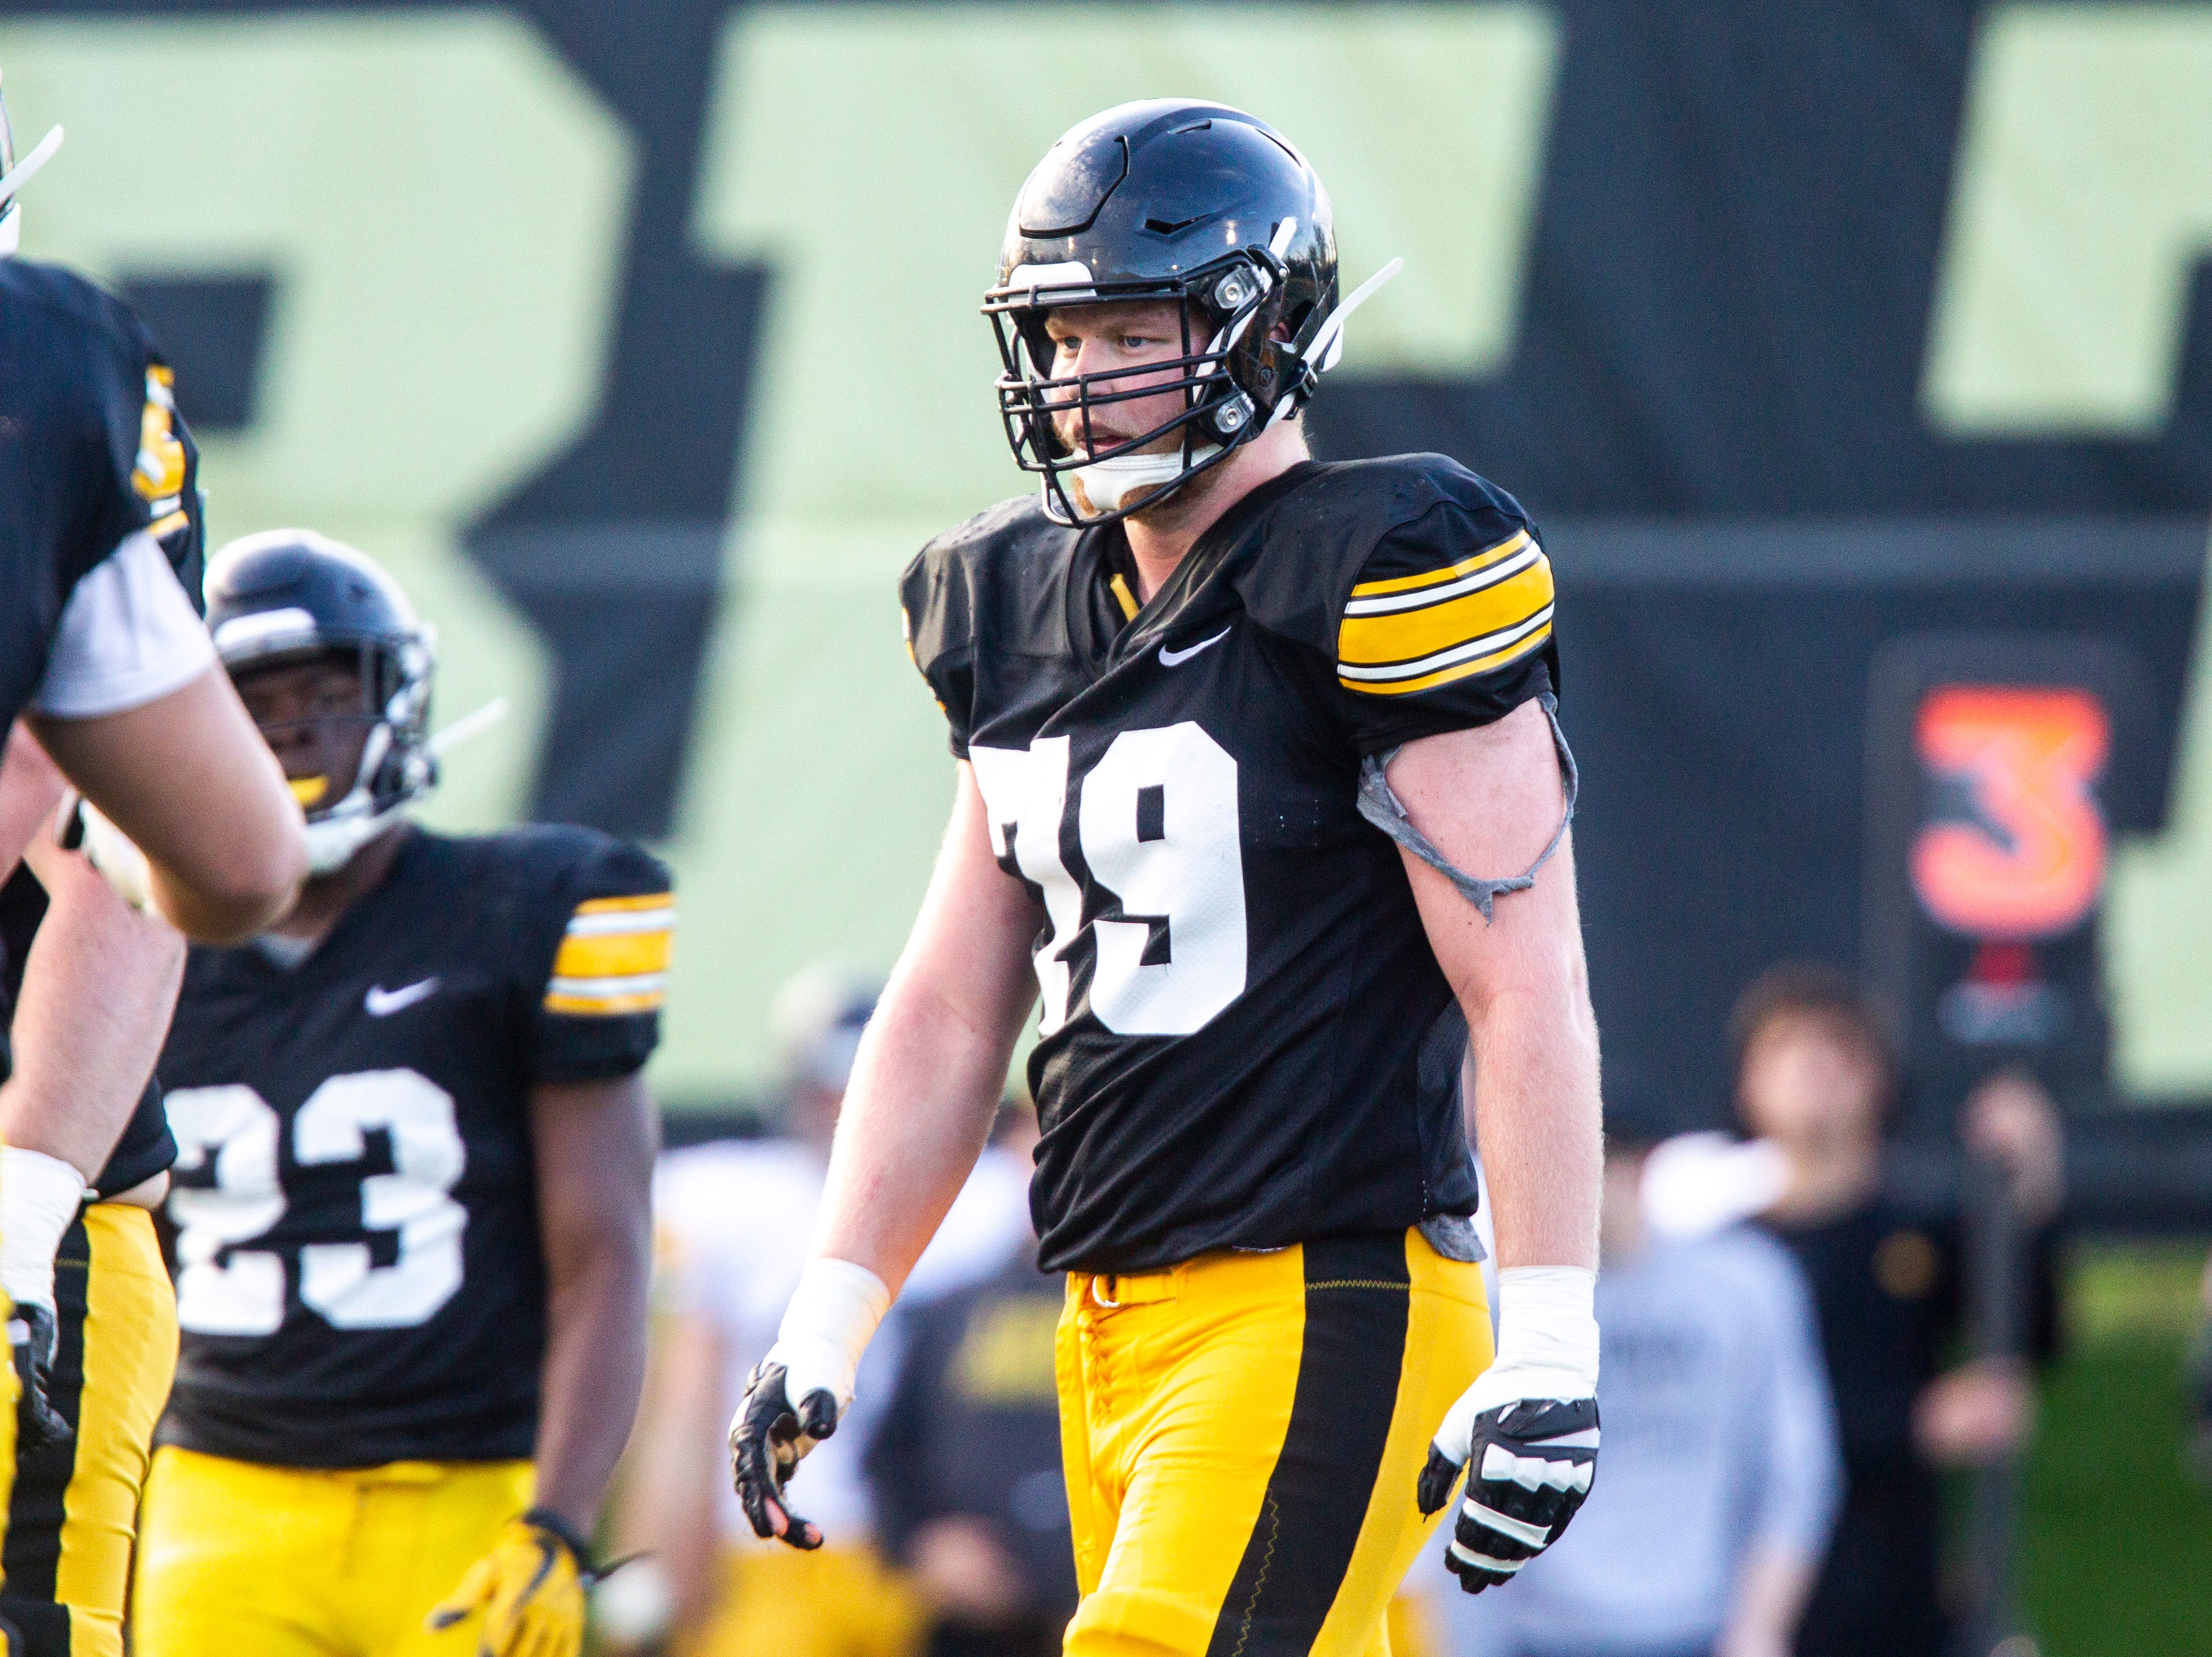 Iowa offensive lineman Jack Plumb (79) walks up to the line during the final spring football practice, Friday, April 26, 2019, at the University of Iowa outdoor practice facility in Iowa City, Iowa.